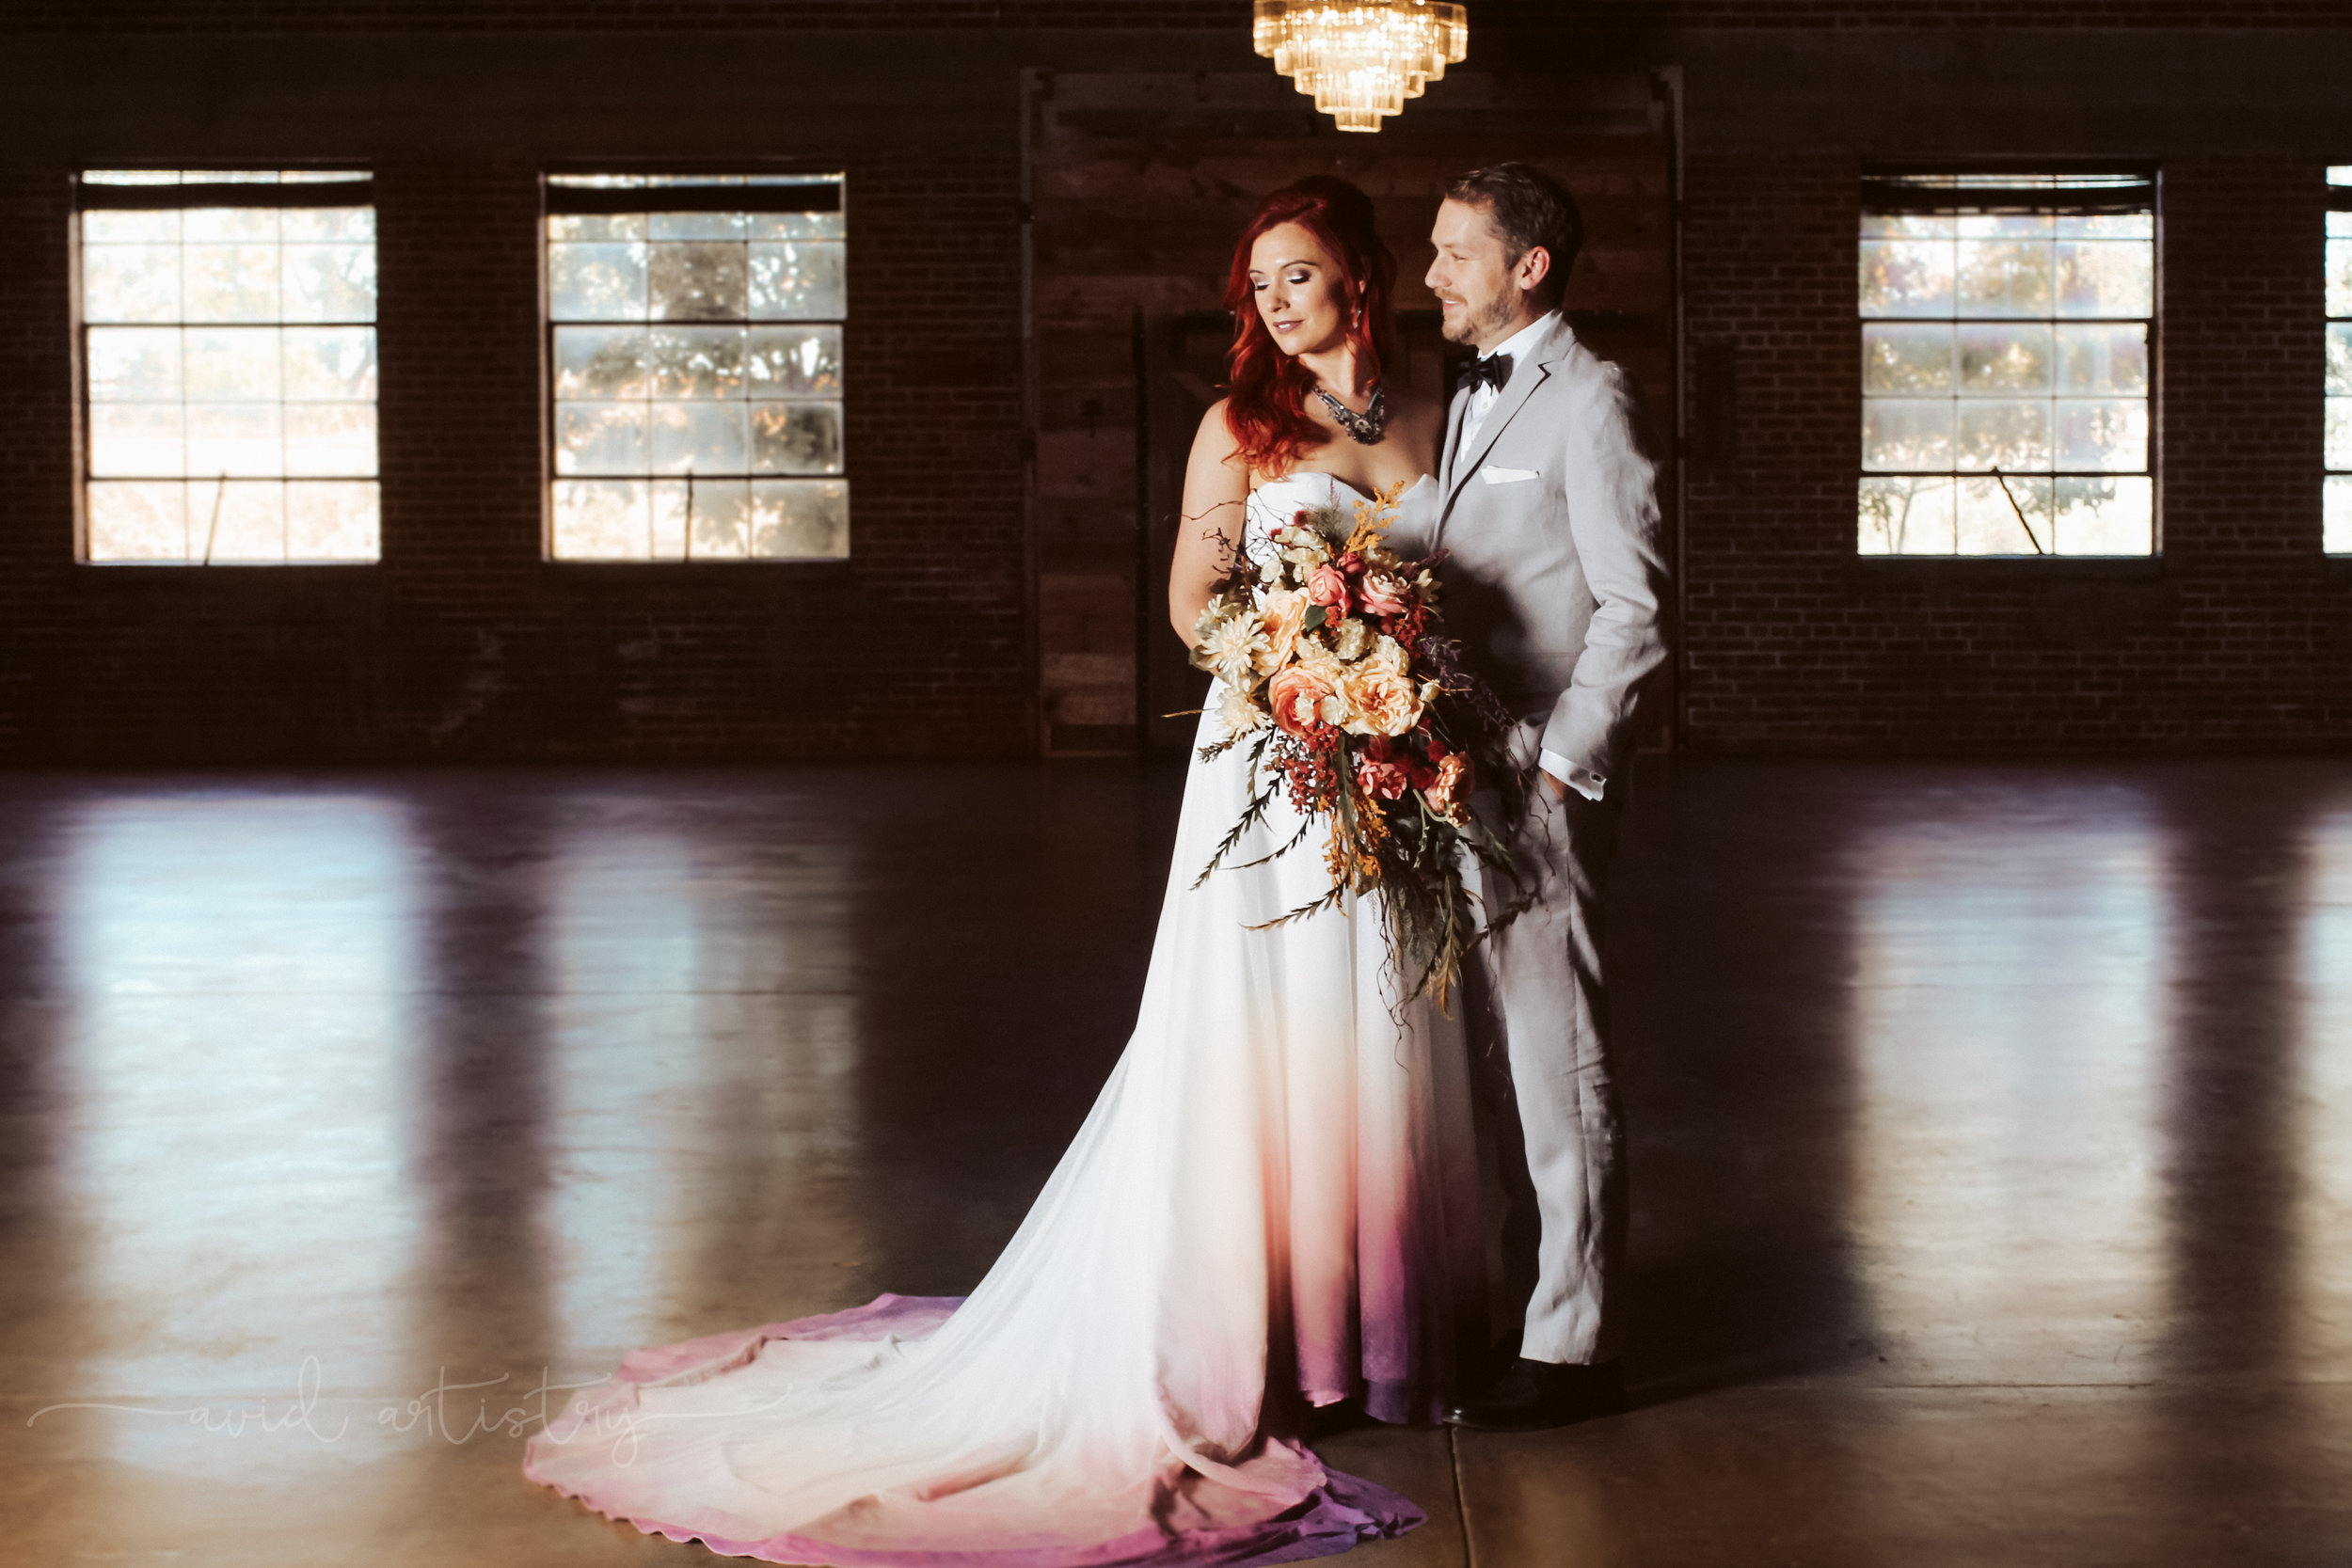 Wedding Photographer, Wichita, Ks. Avid Artistry.